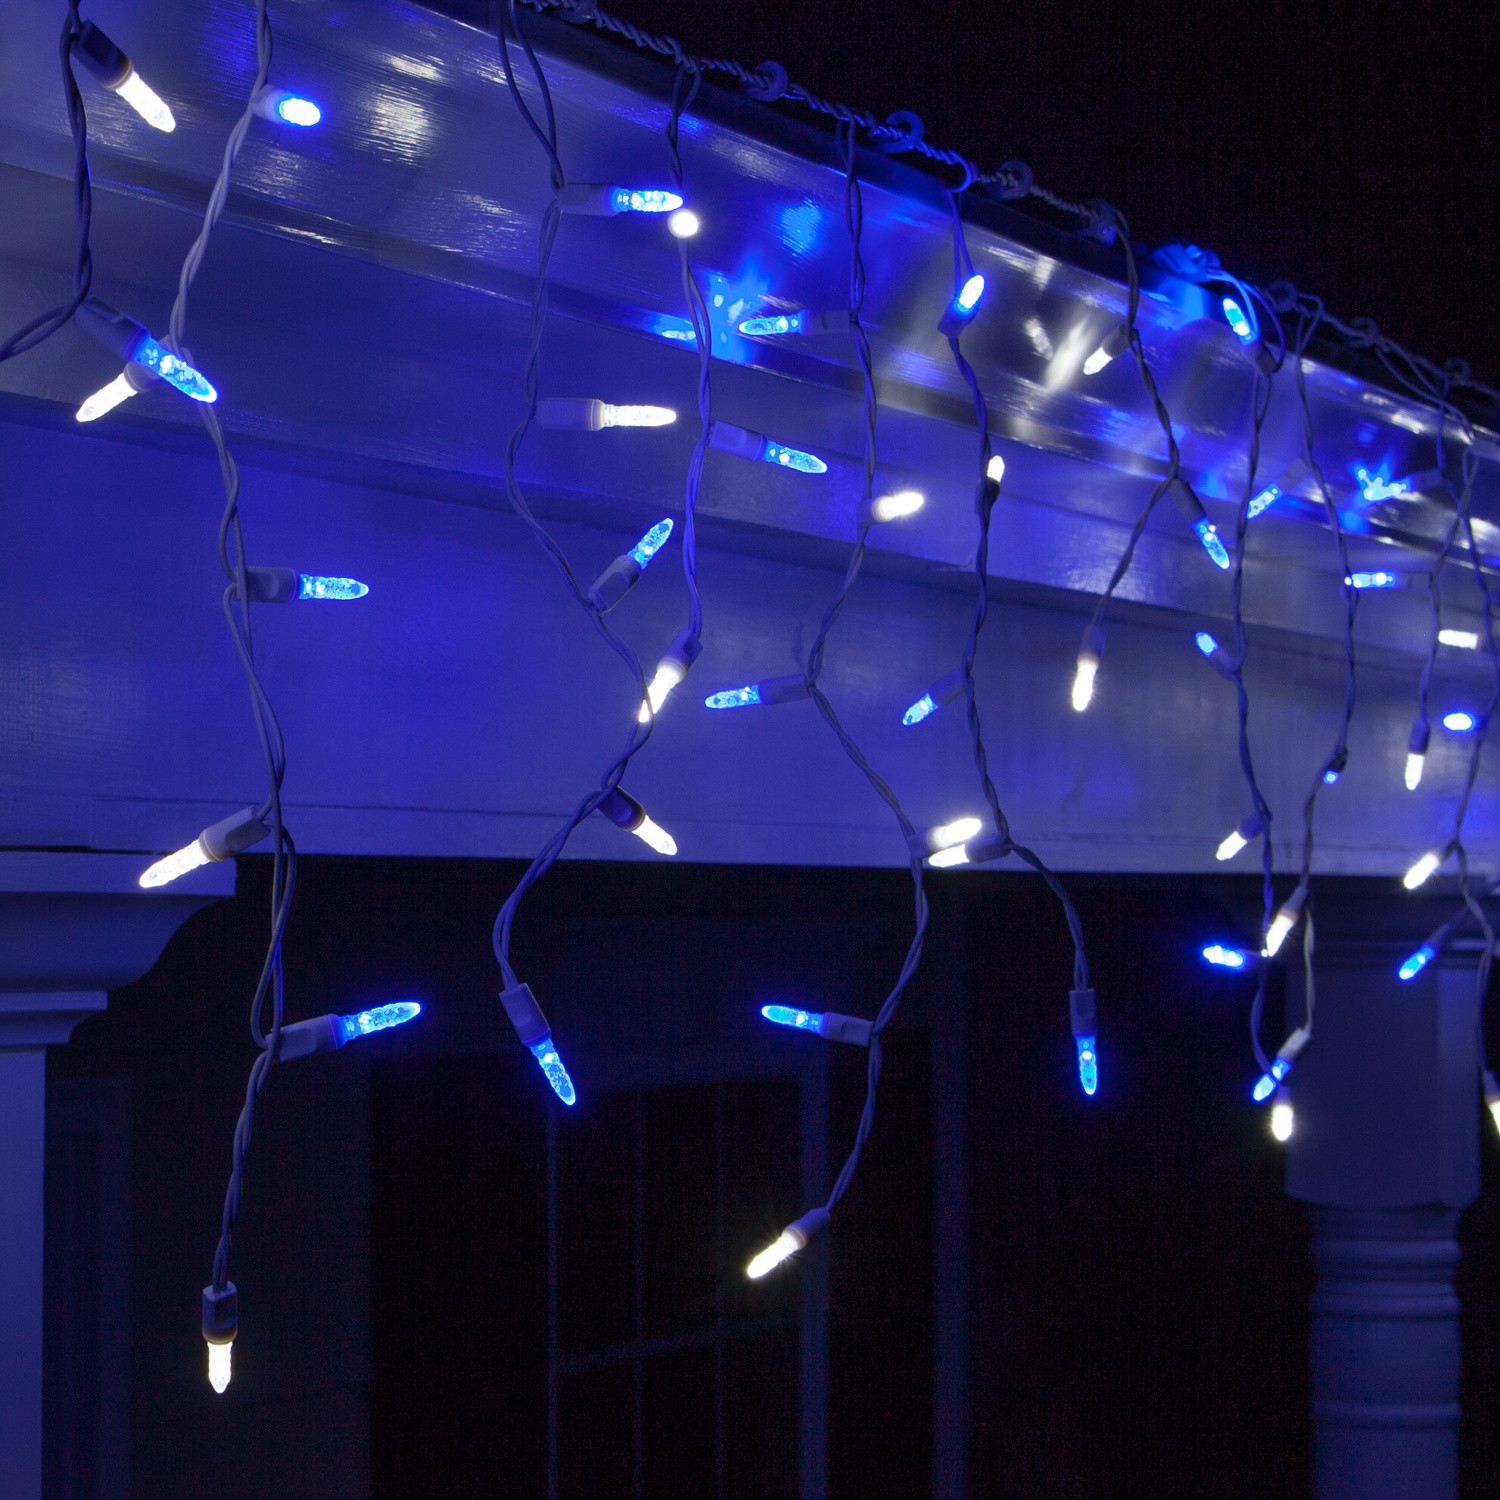 Outdoor Christmas Icicle Lights  300 LED Multi Function Indoor Outdoor Christmas Lights